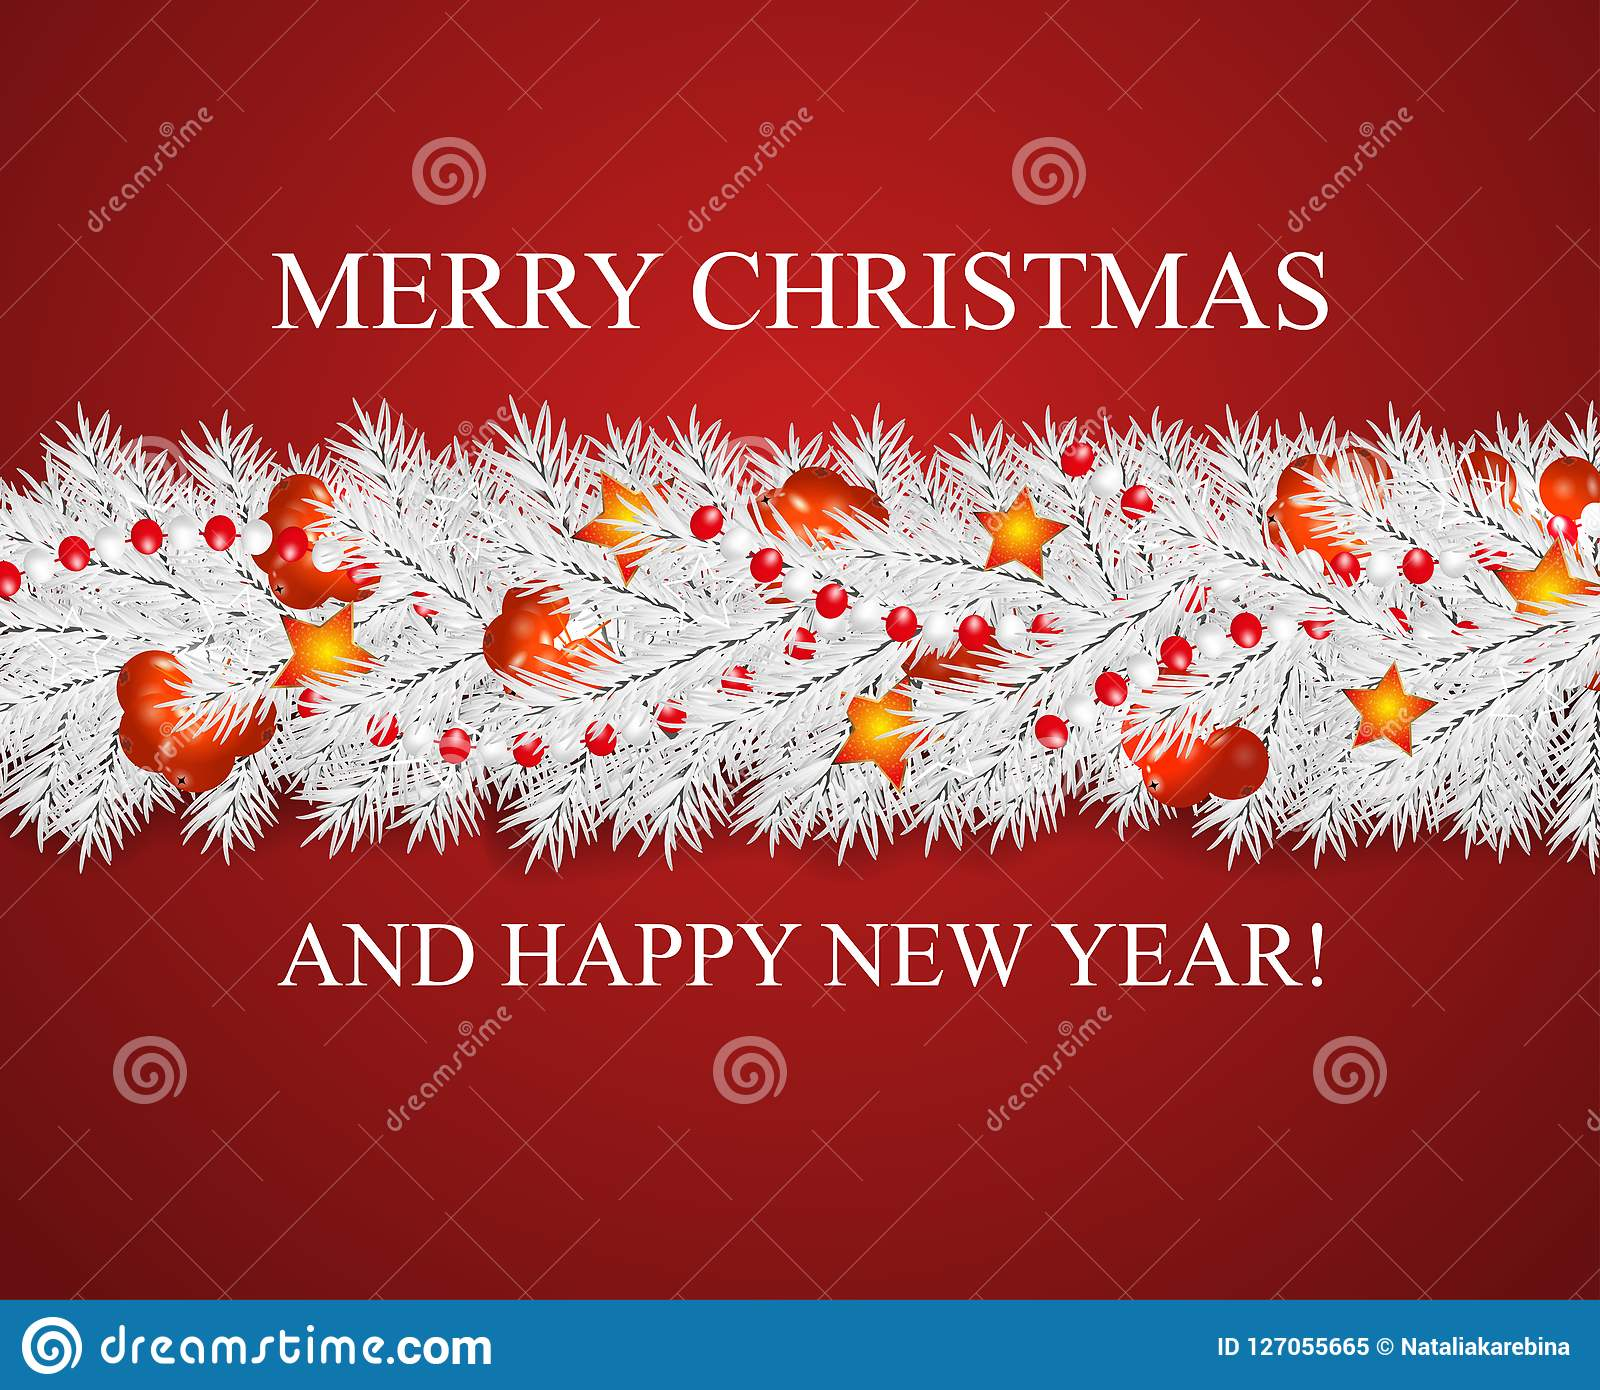 christmas and happy new year garland and border of realistic looking white christmas tree branches decorated